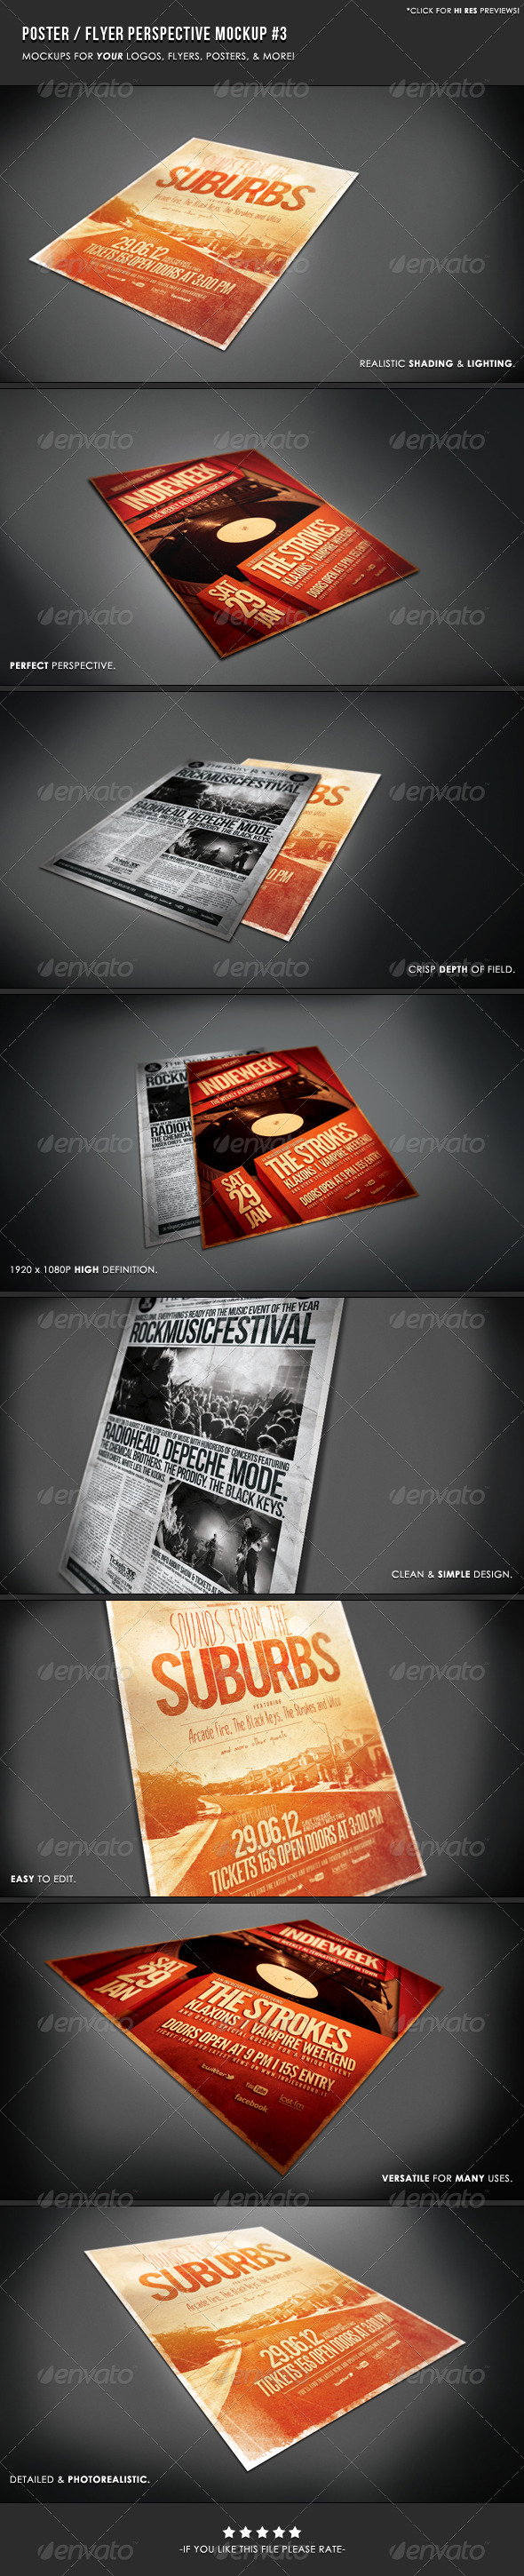 GraphicRiver Poster & Flyer Perspective Mockup #3 4064945